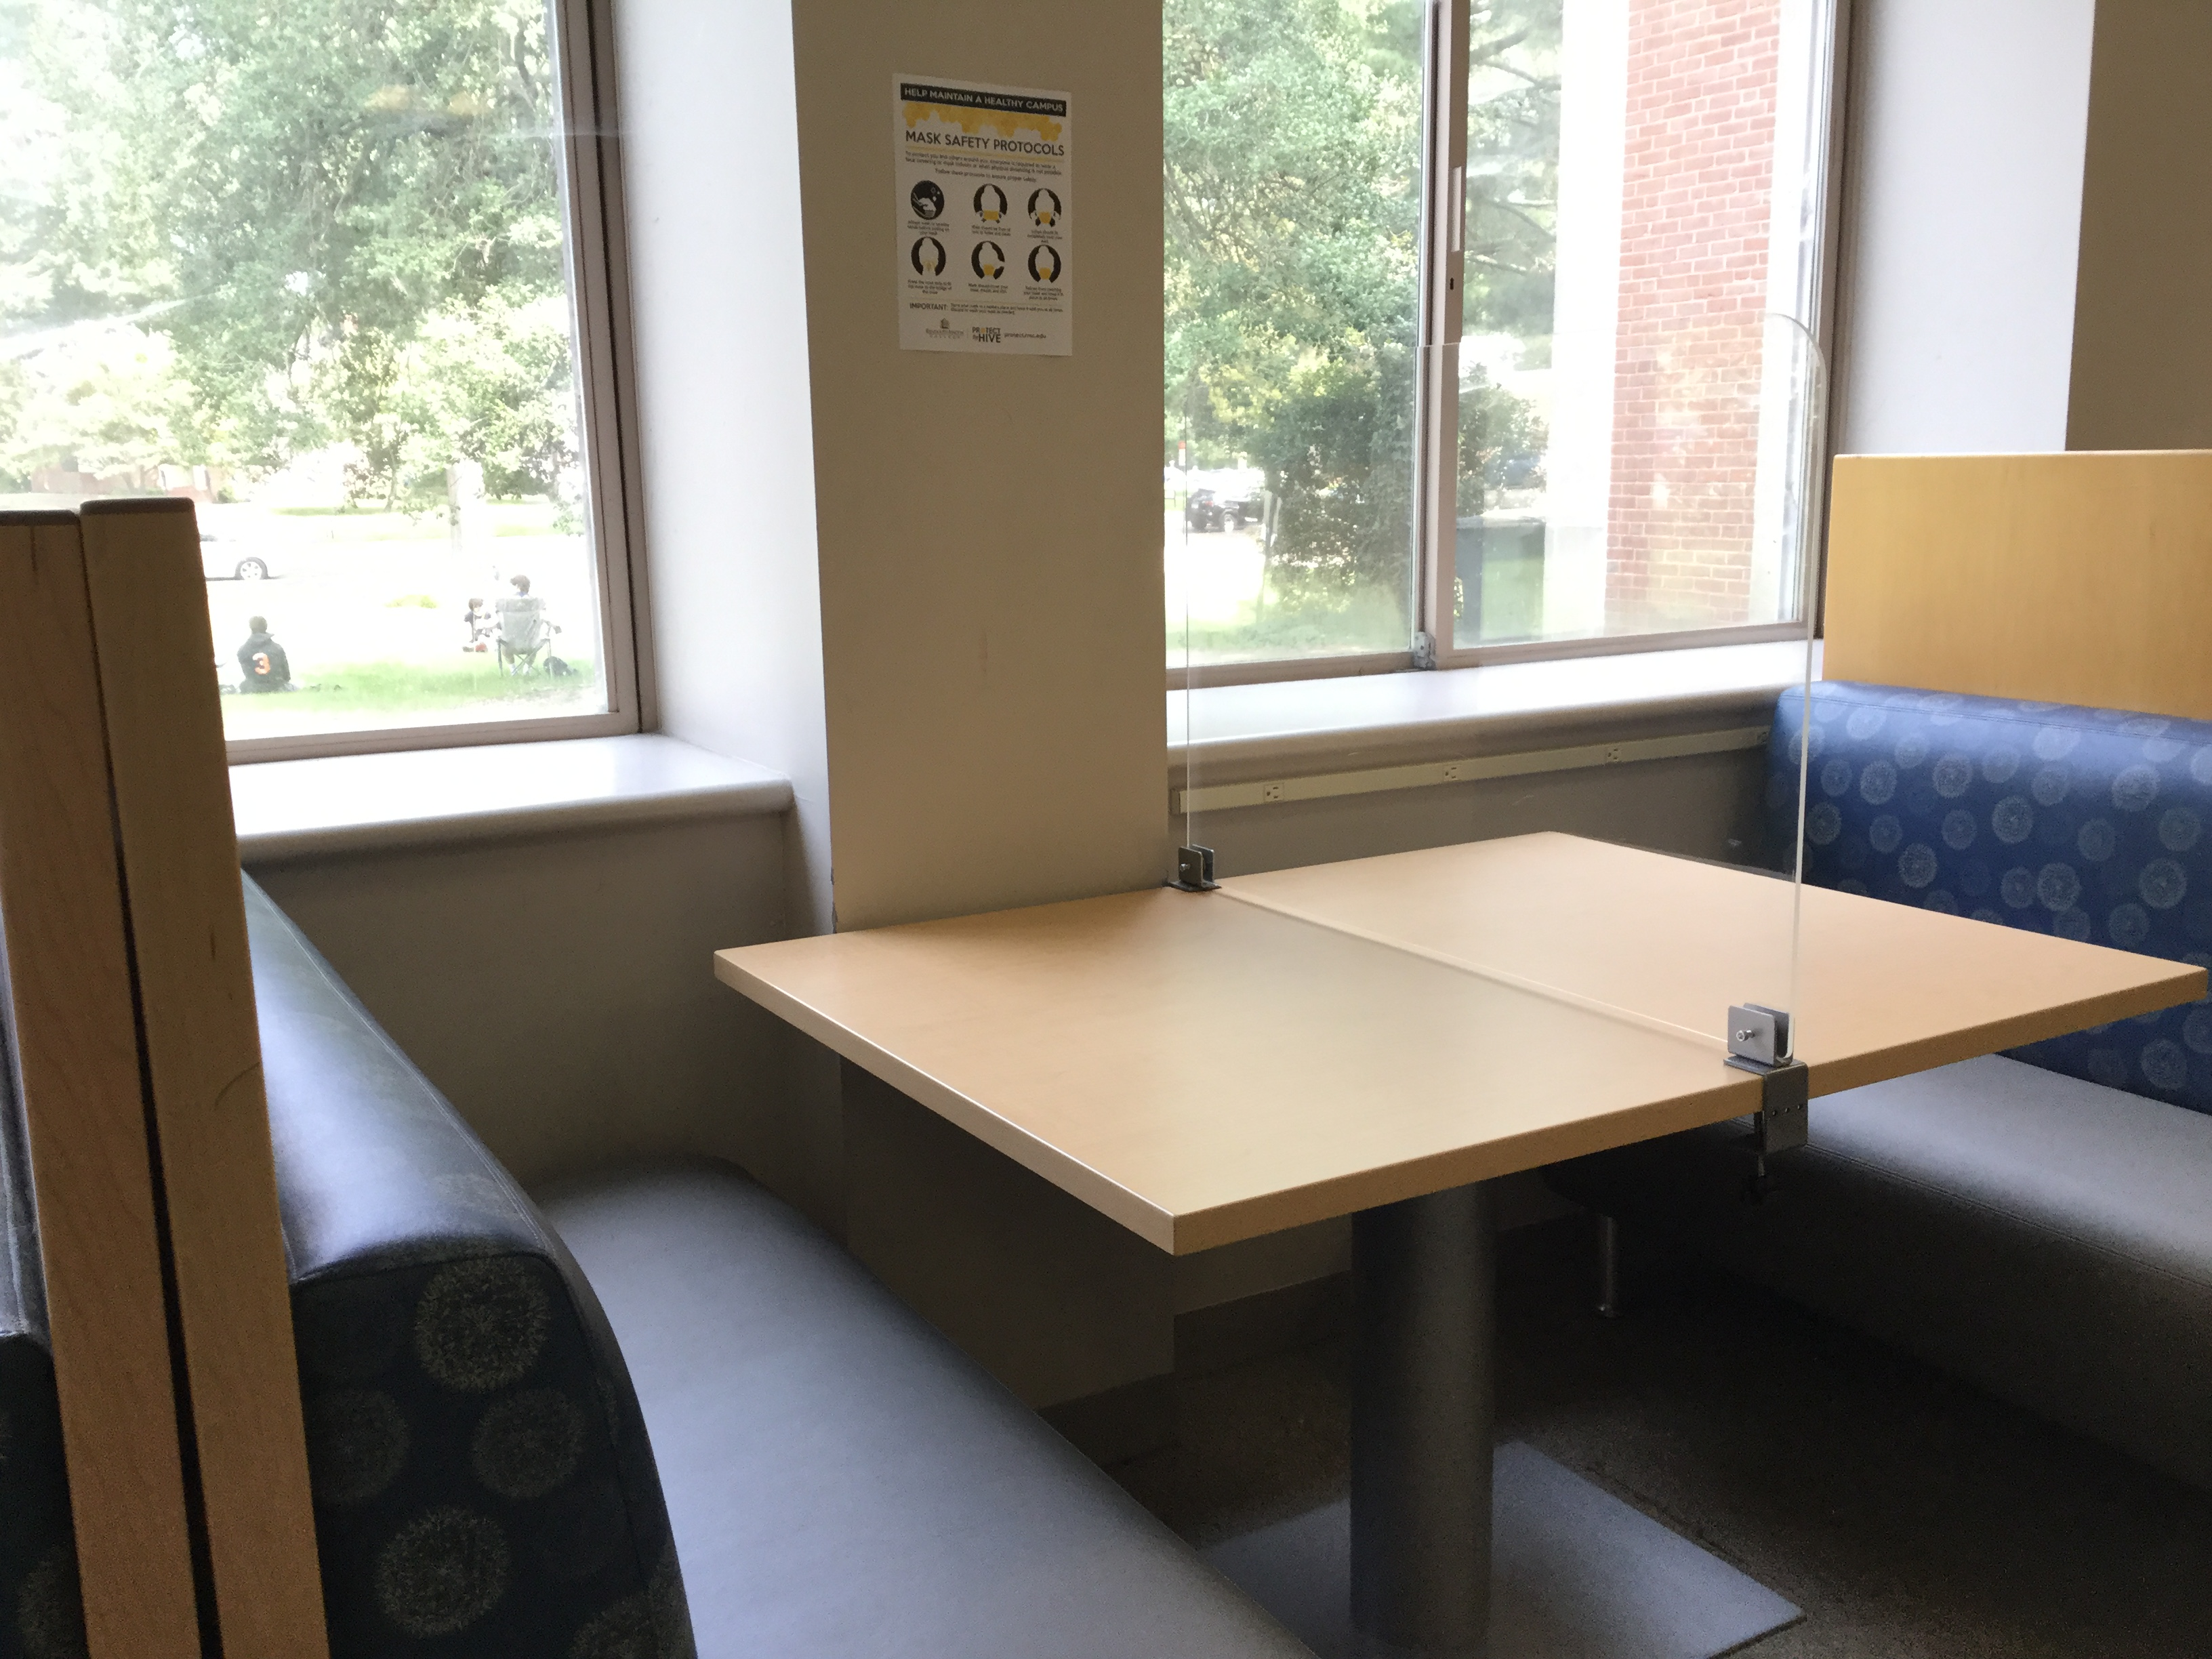 image shows booth seating in the library with plexiglass across the table.